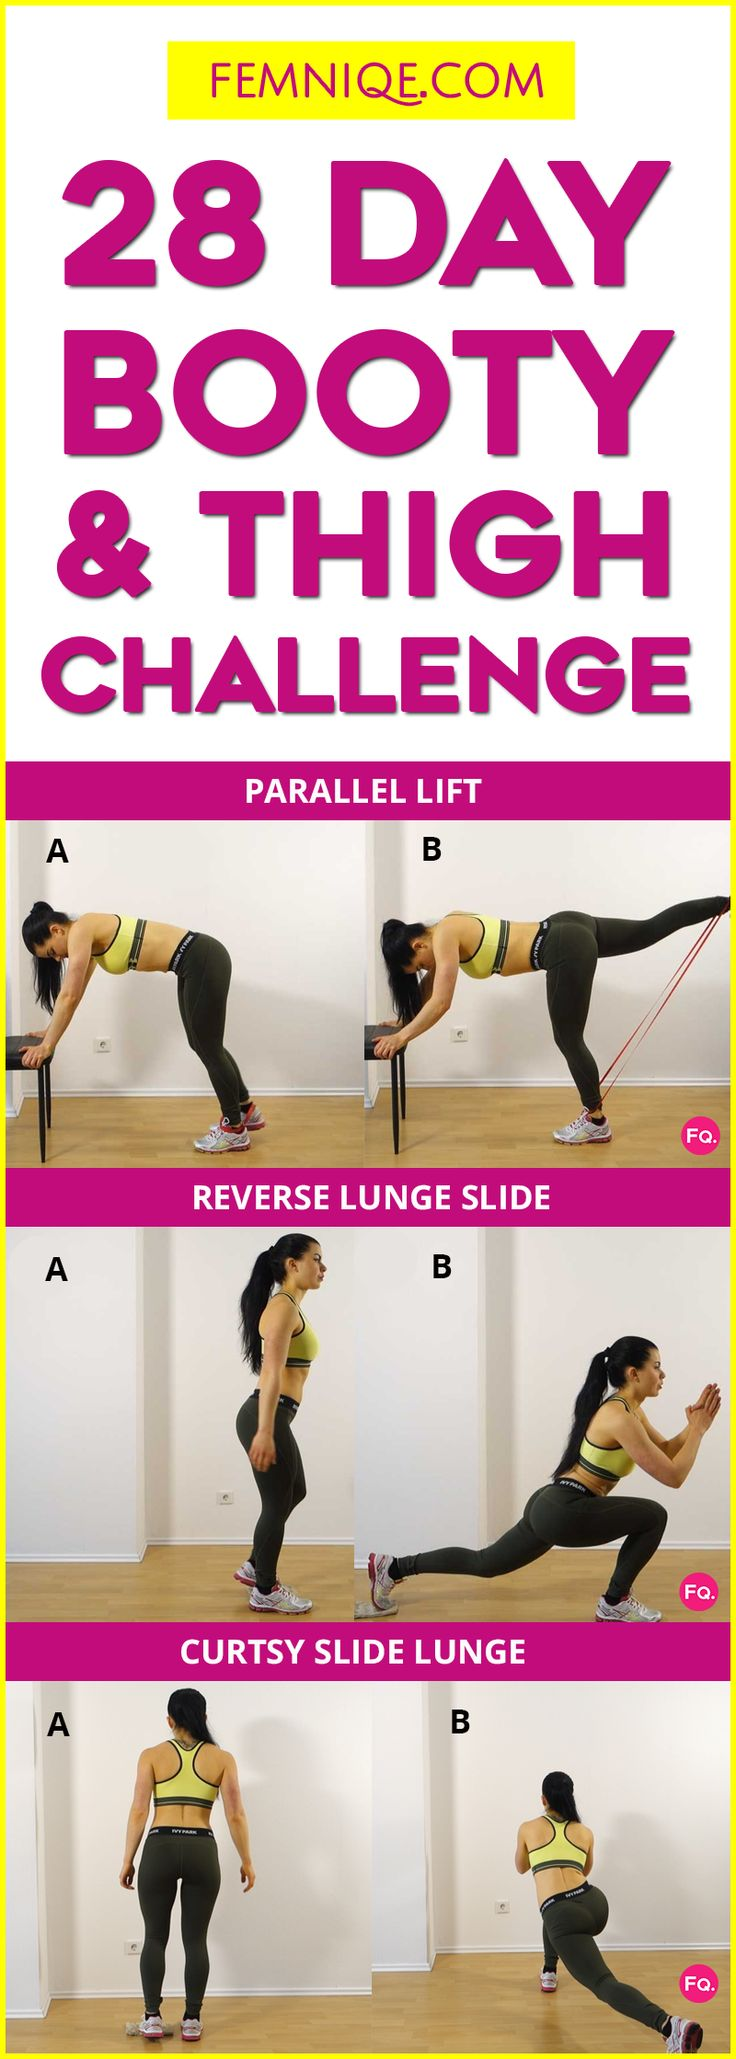 28 Day Butt & Thigh Workout Challenge (Booty Sculptor) - Butt and thigh workout at home or gym. This butt and thigh workout plan will sculpt your whole lower body. Whether you want to lose thigh fat and build a bigger butt this routine is for you.